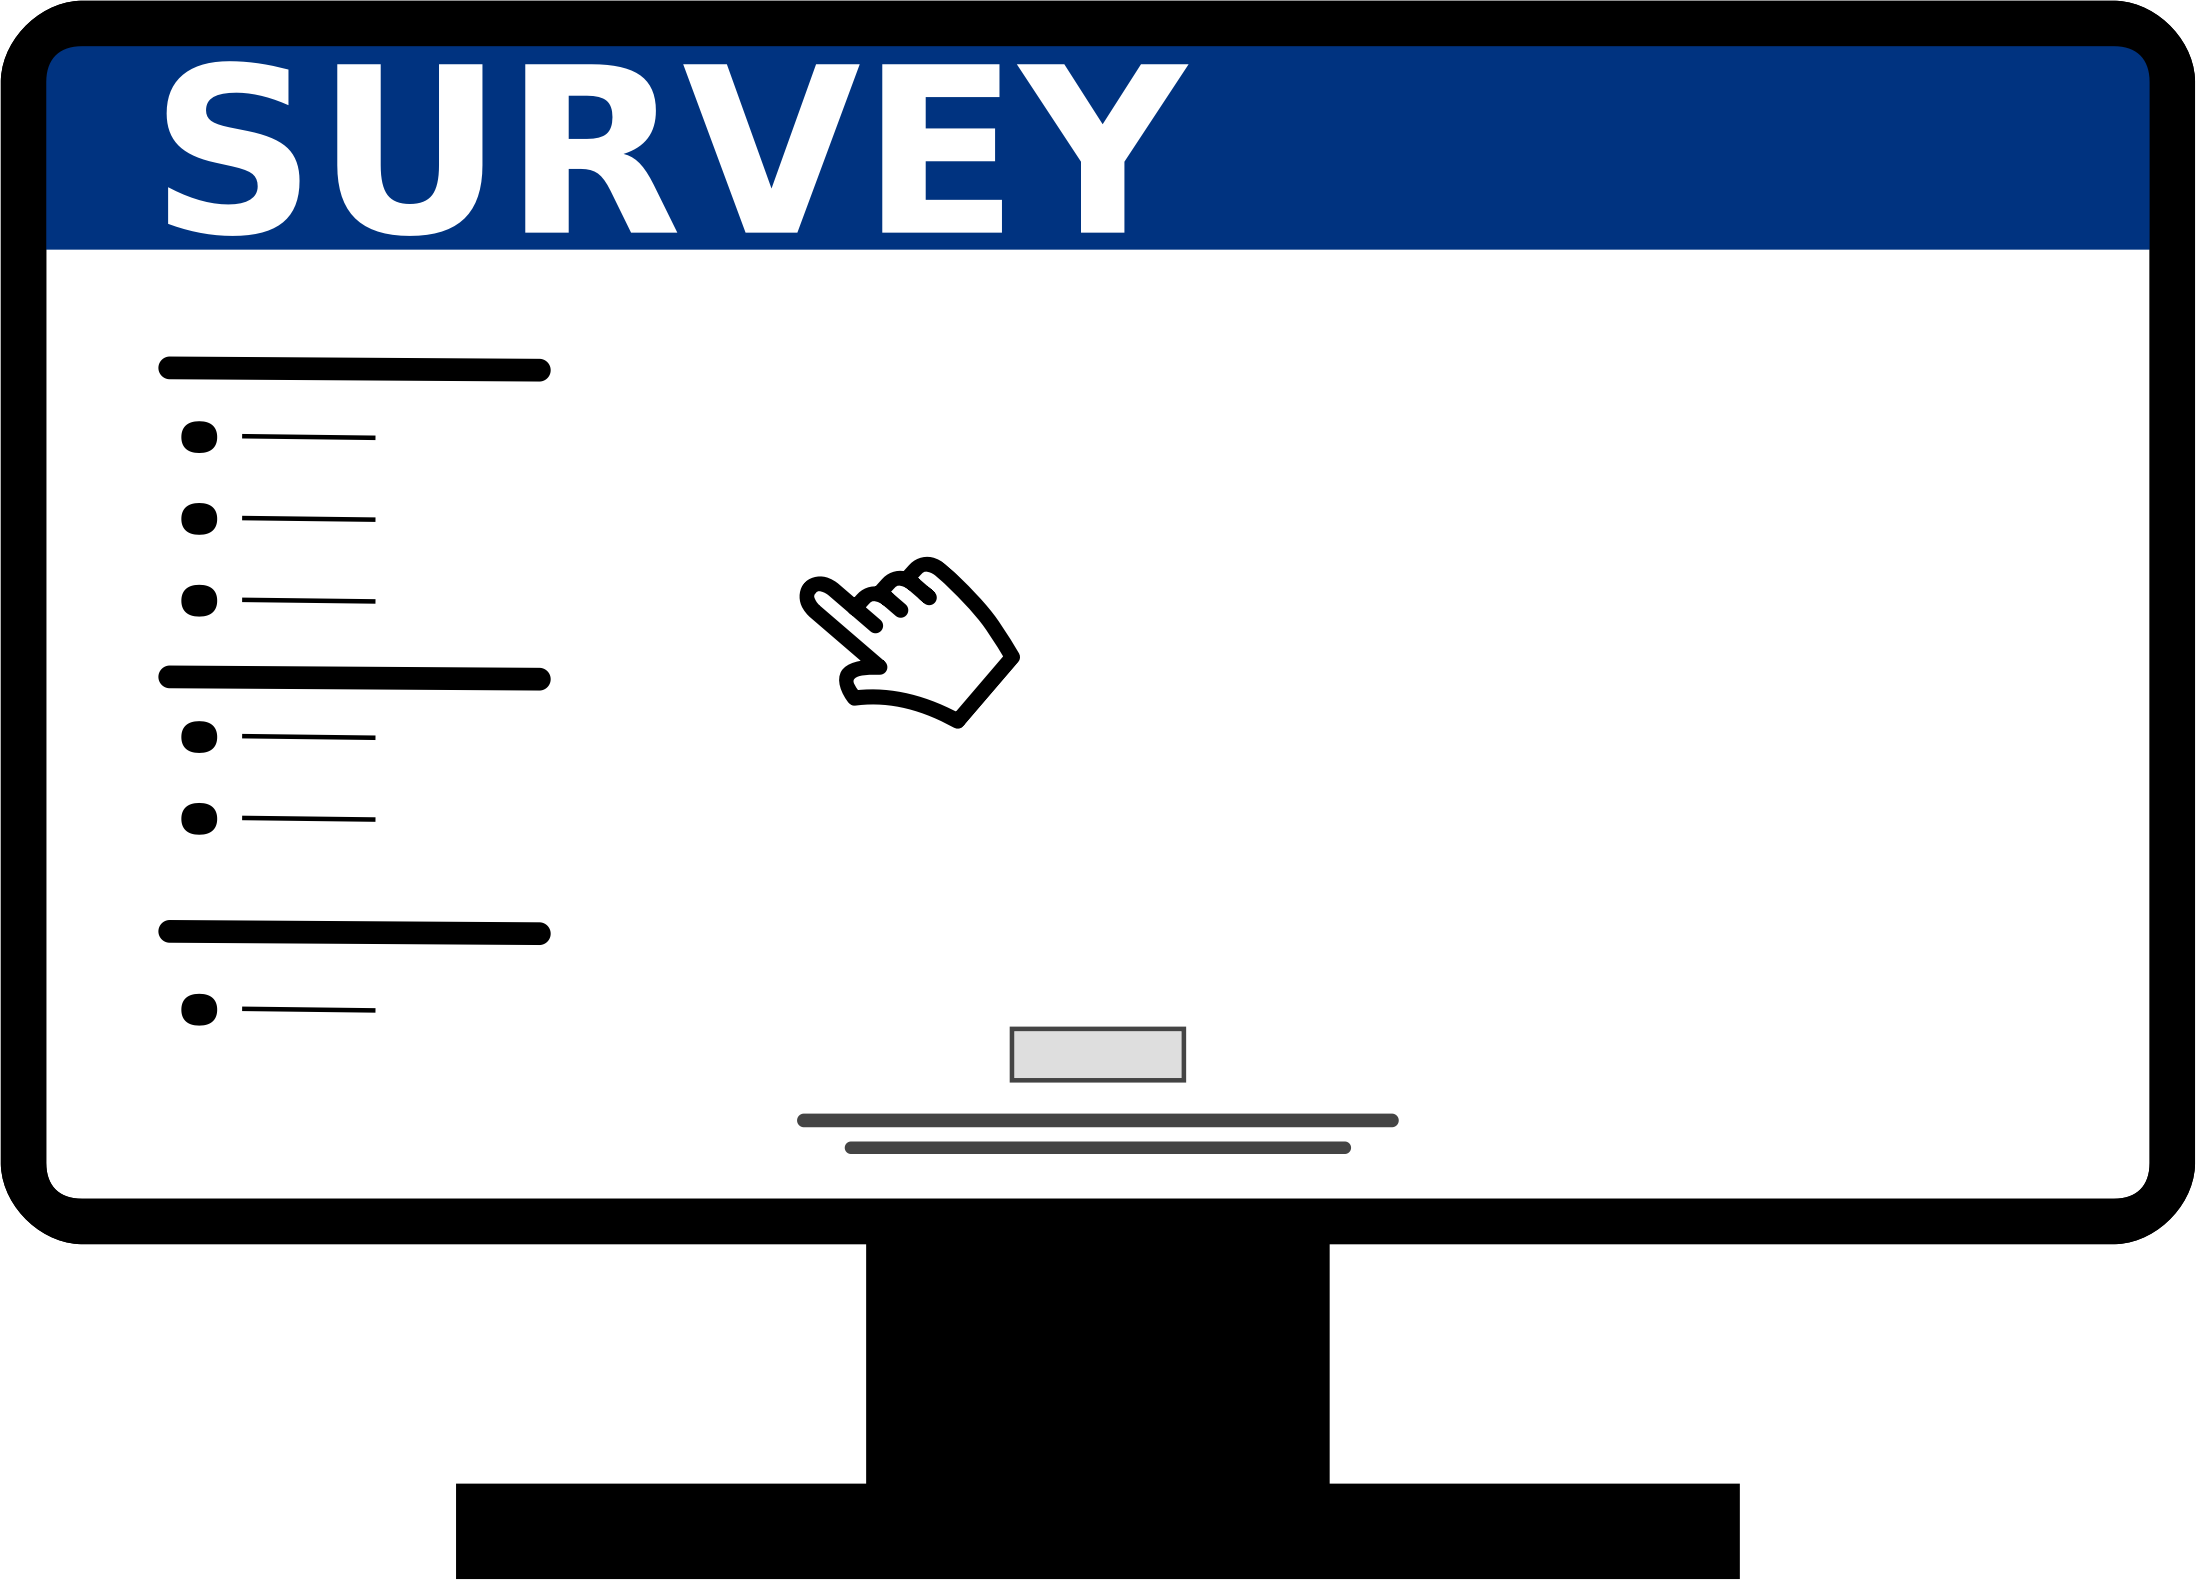 Creation of the second survey